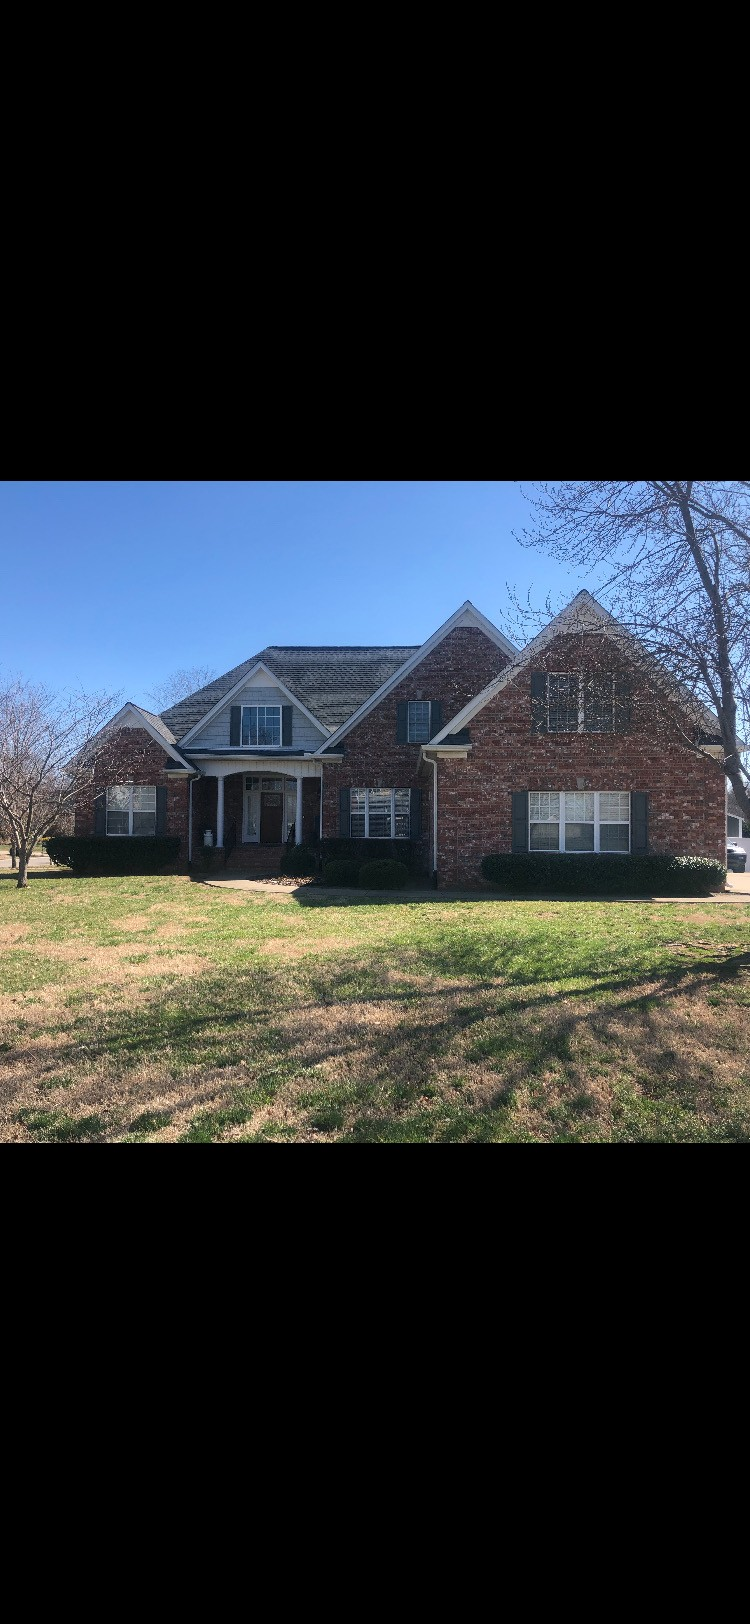 101 Old Orchard Ct Property Photo - Lascassas, TN real estate listing